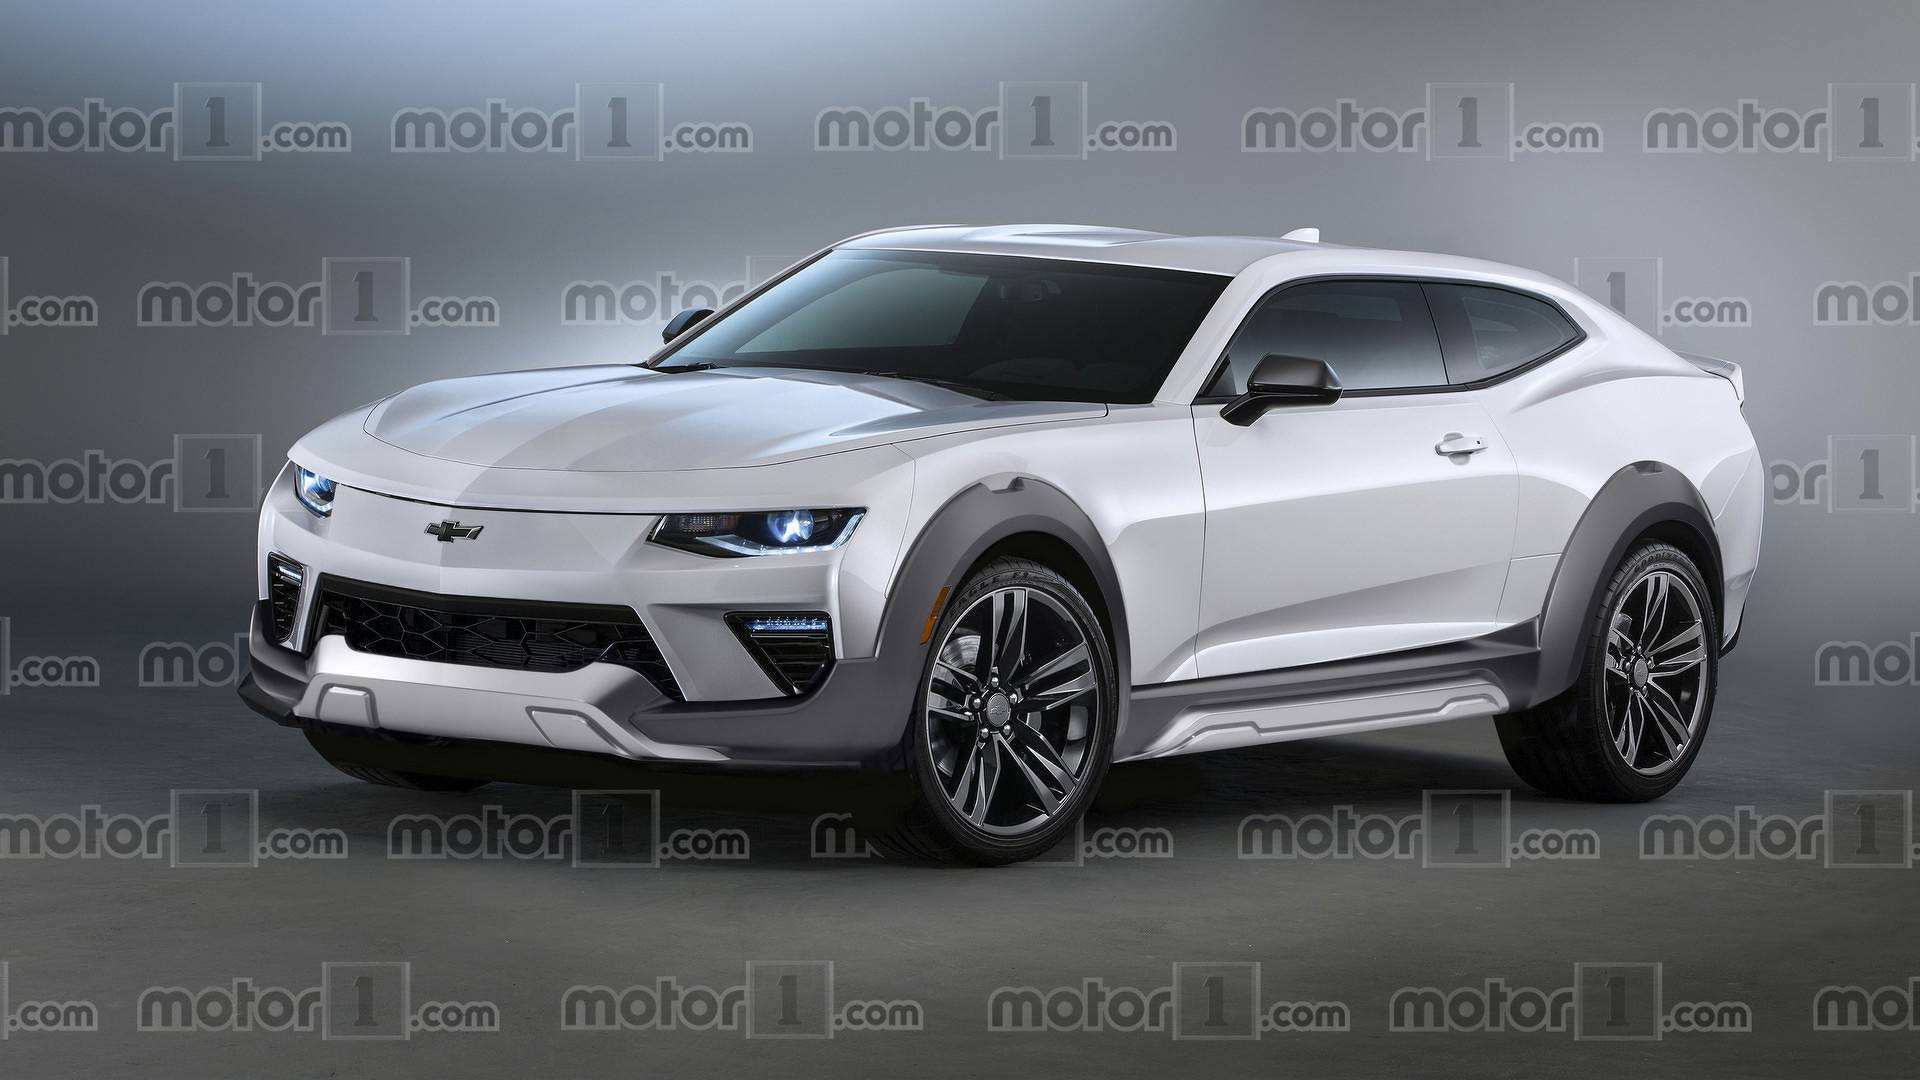 73 A 2020 Chevy Camaro Redesign